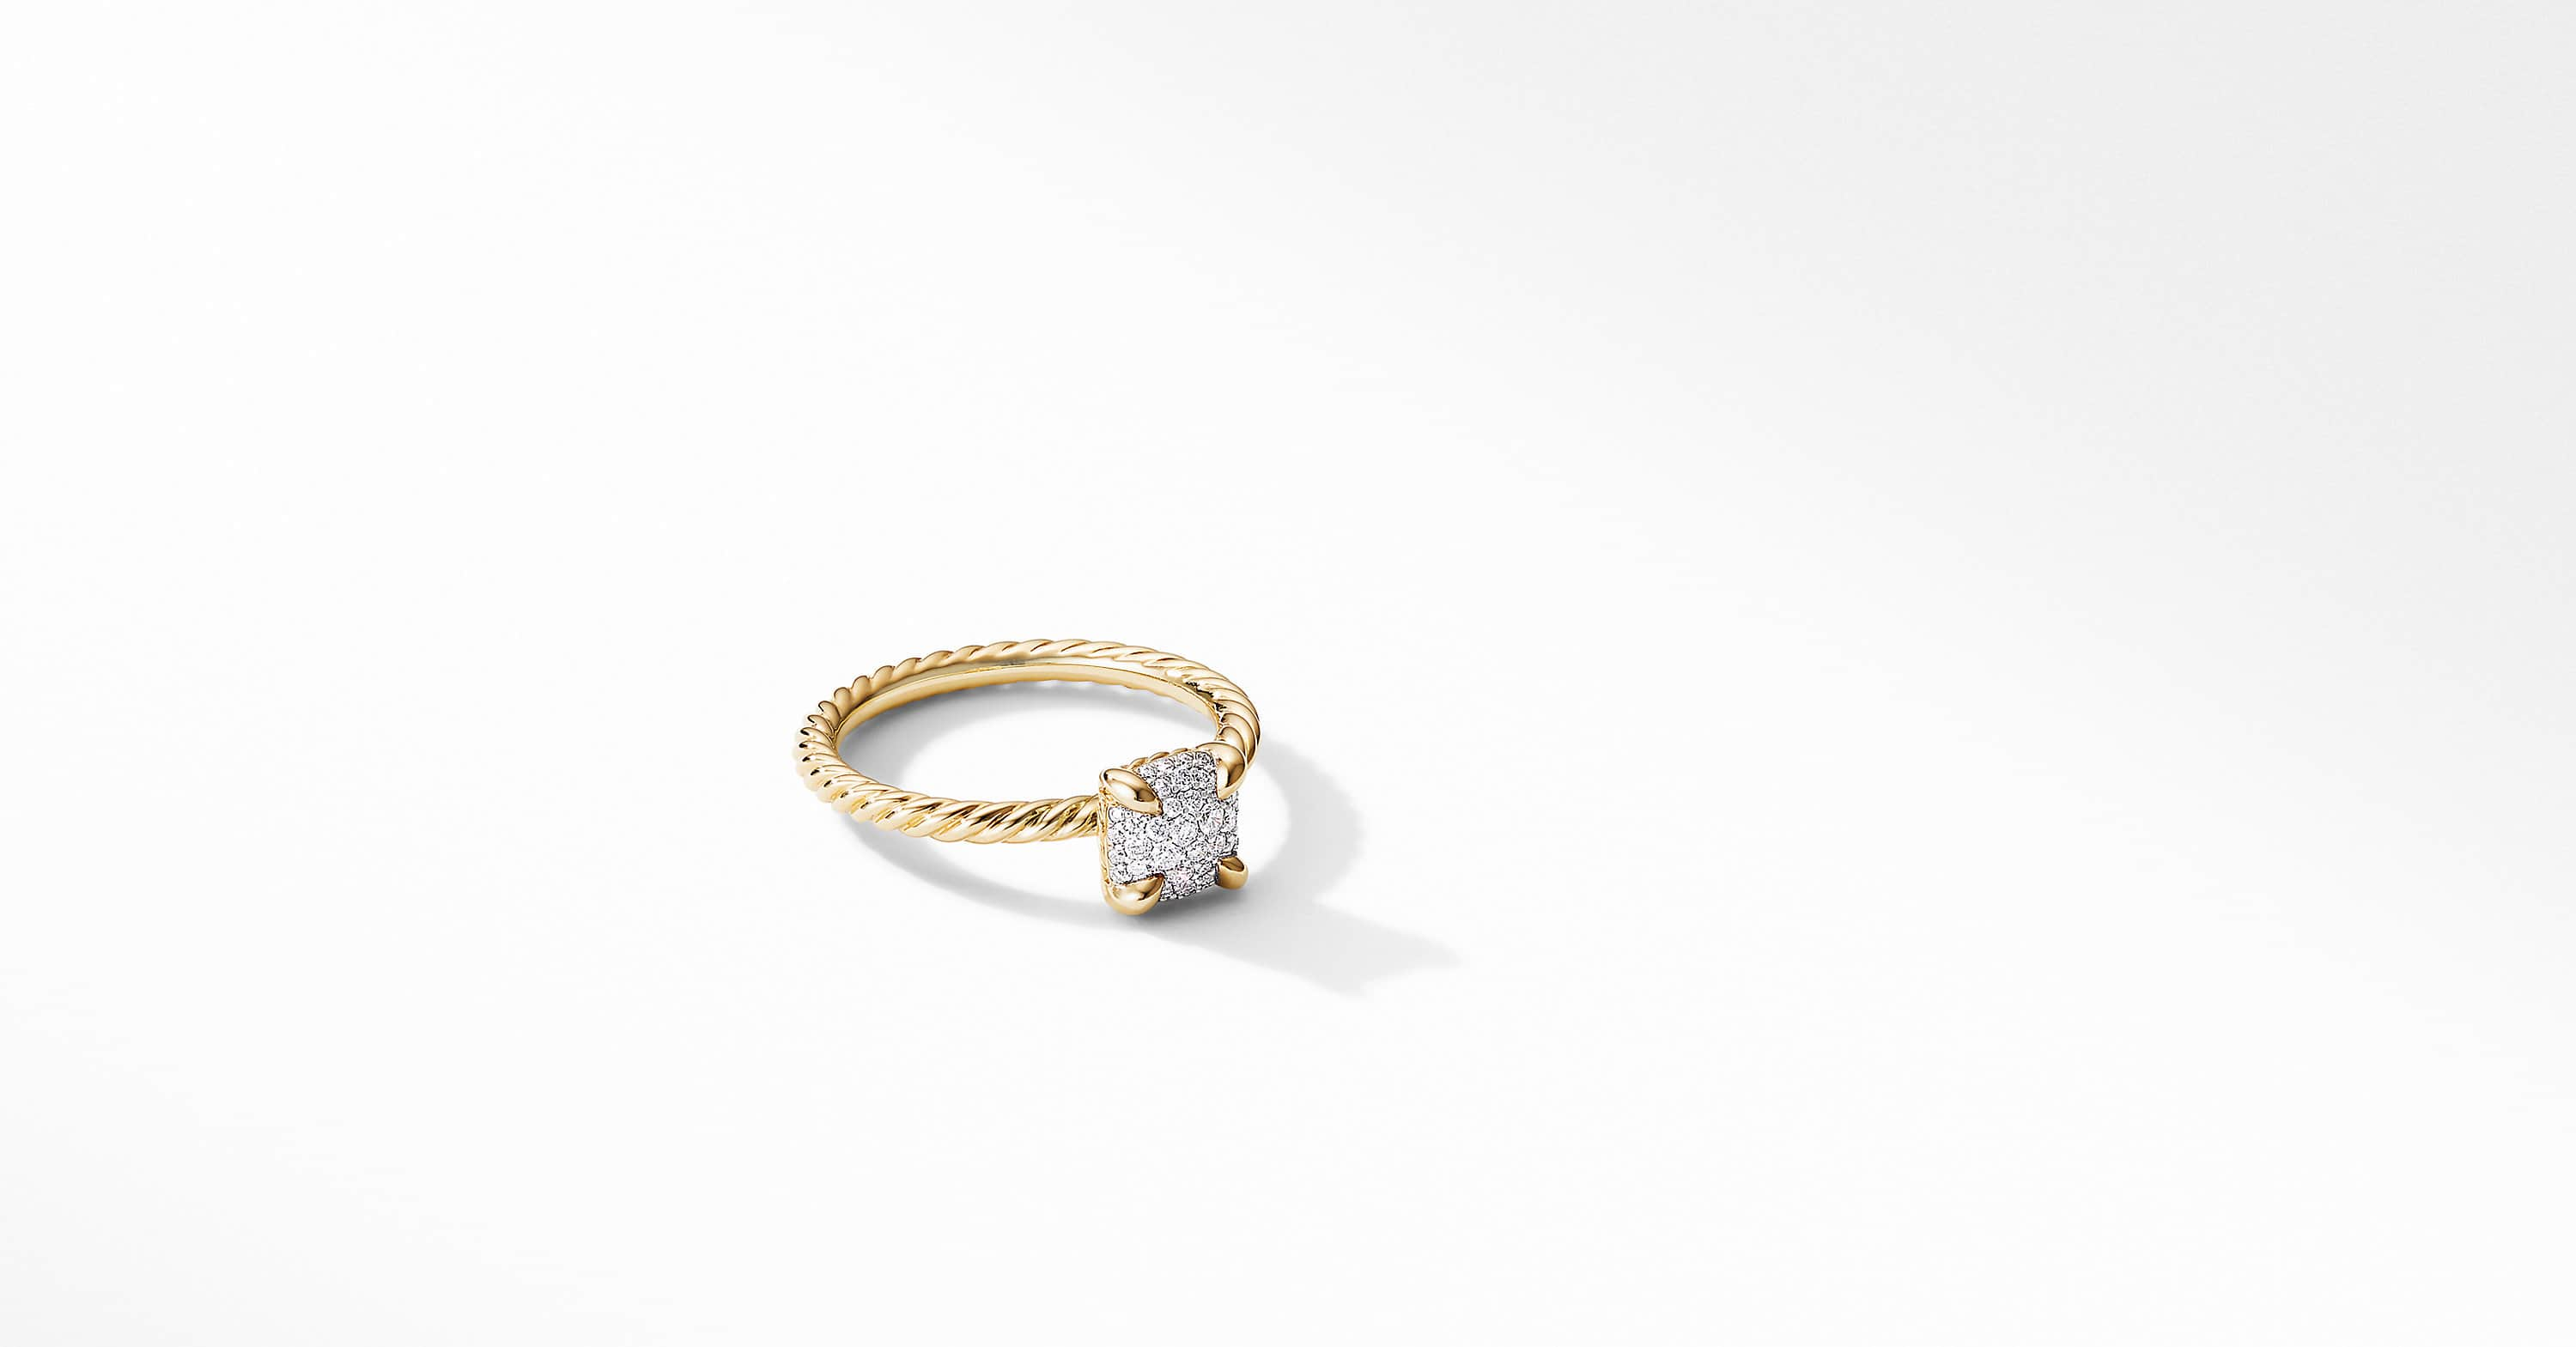 Chatelaine Ring in 18K Yellow Gold with Full Pavé, 7mm